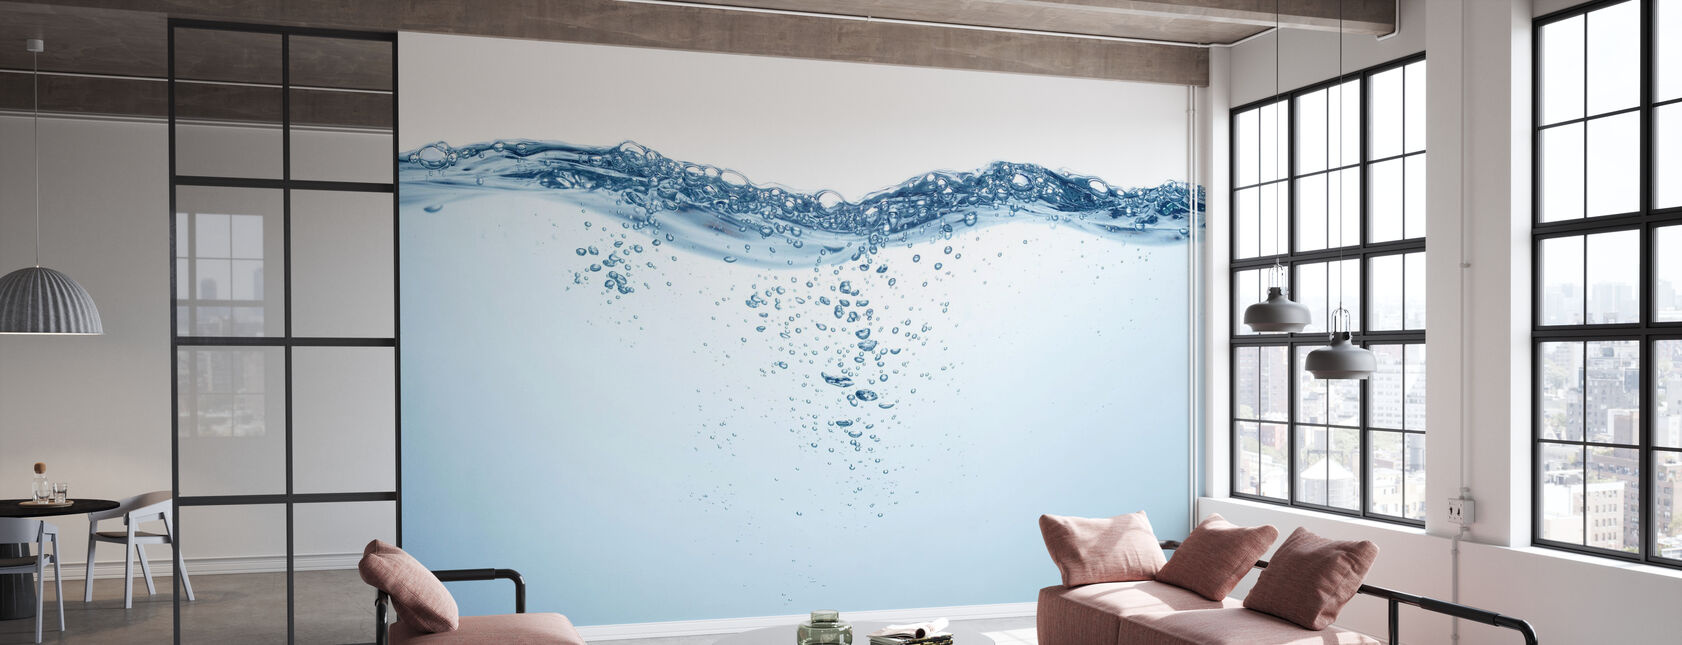 Water Splash and Bubbles - Wallpaper - Office